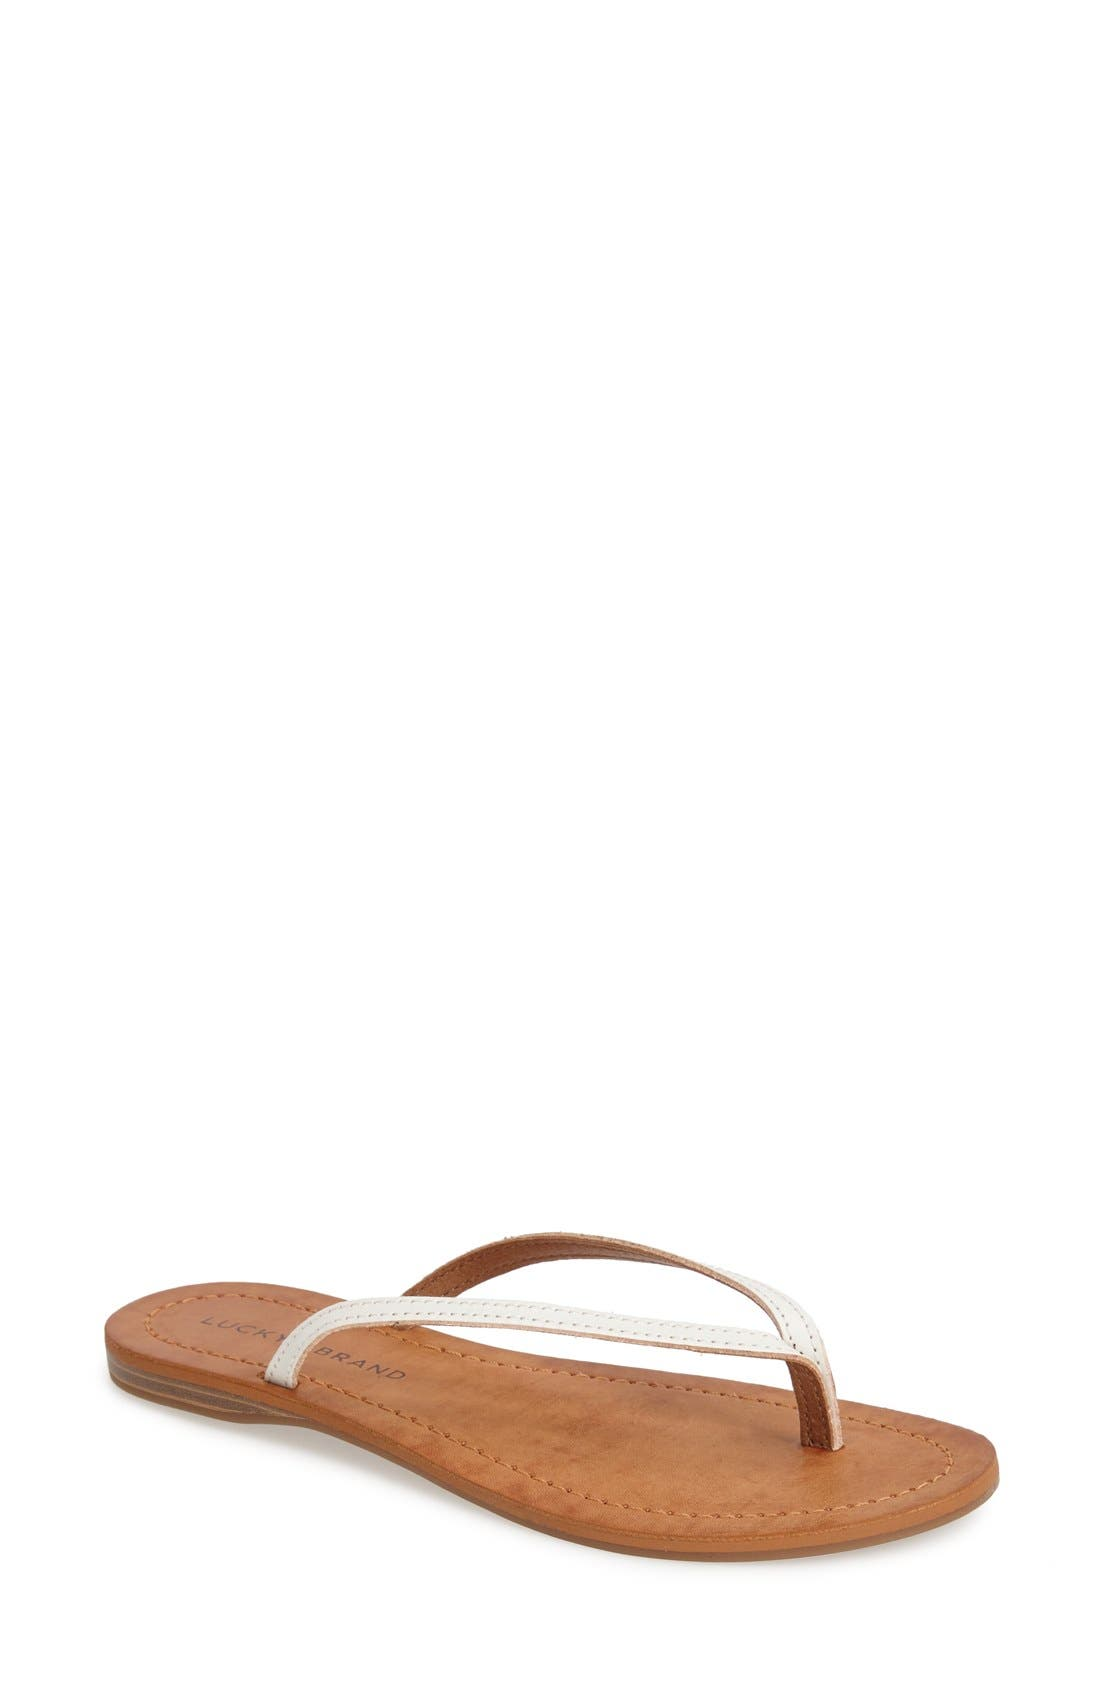 Main Image - Lucky Brand 'Amberr' Leather Thong Sandal (Women)